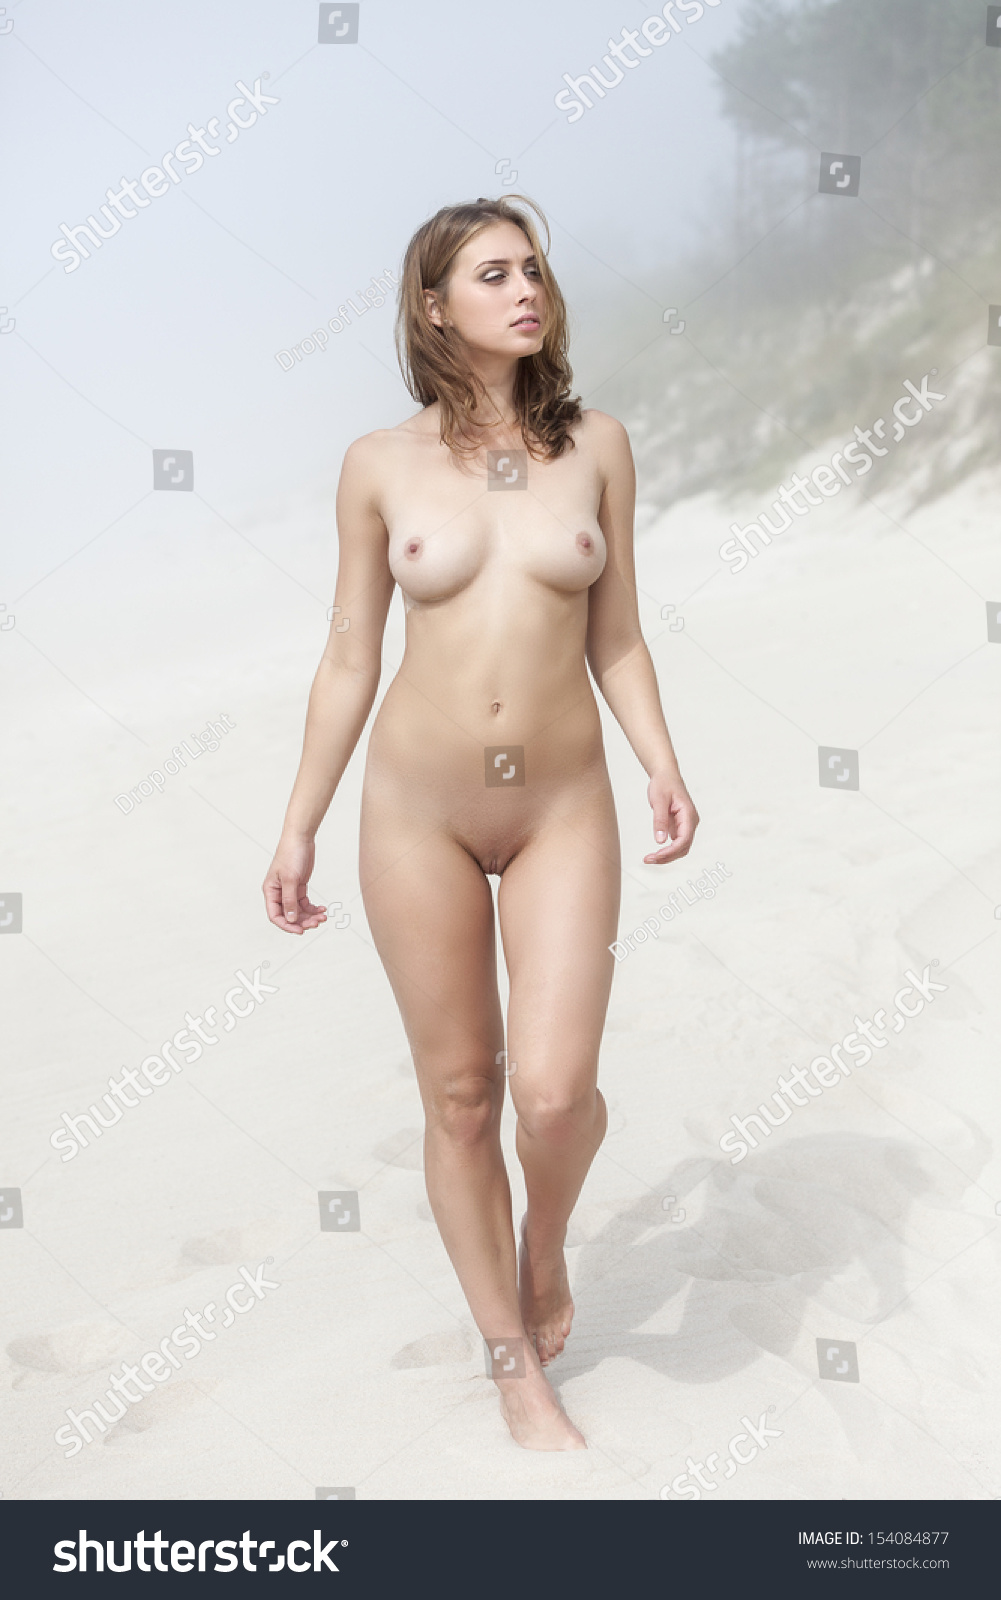 Big naked woman walking